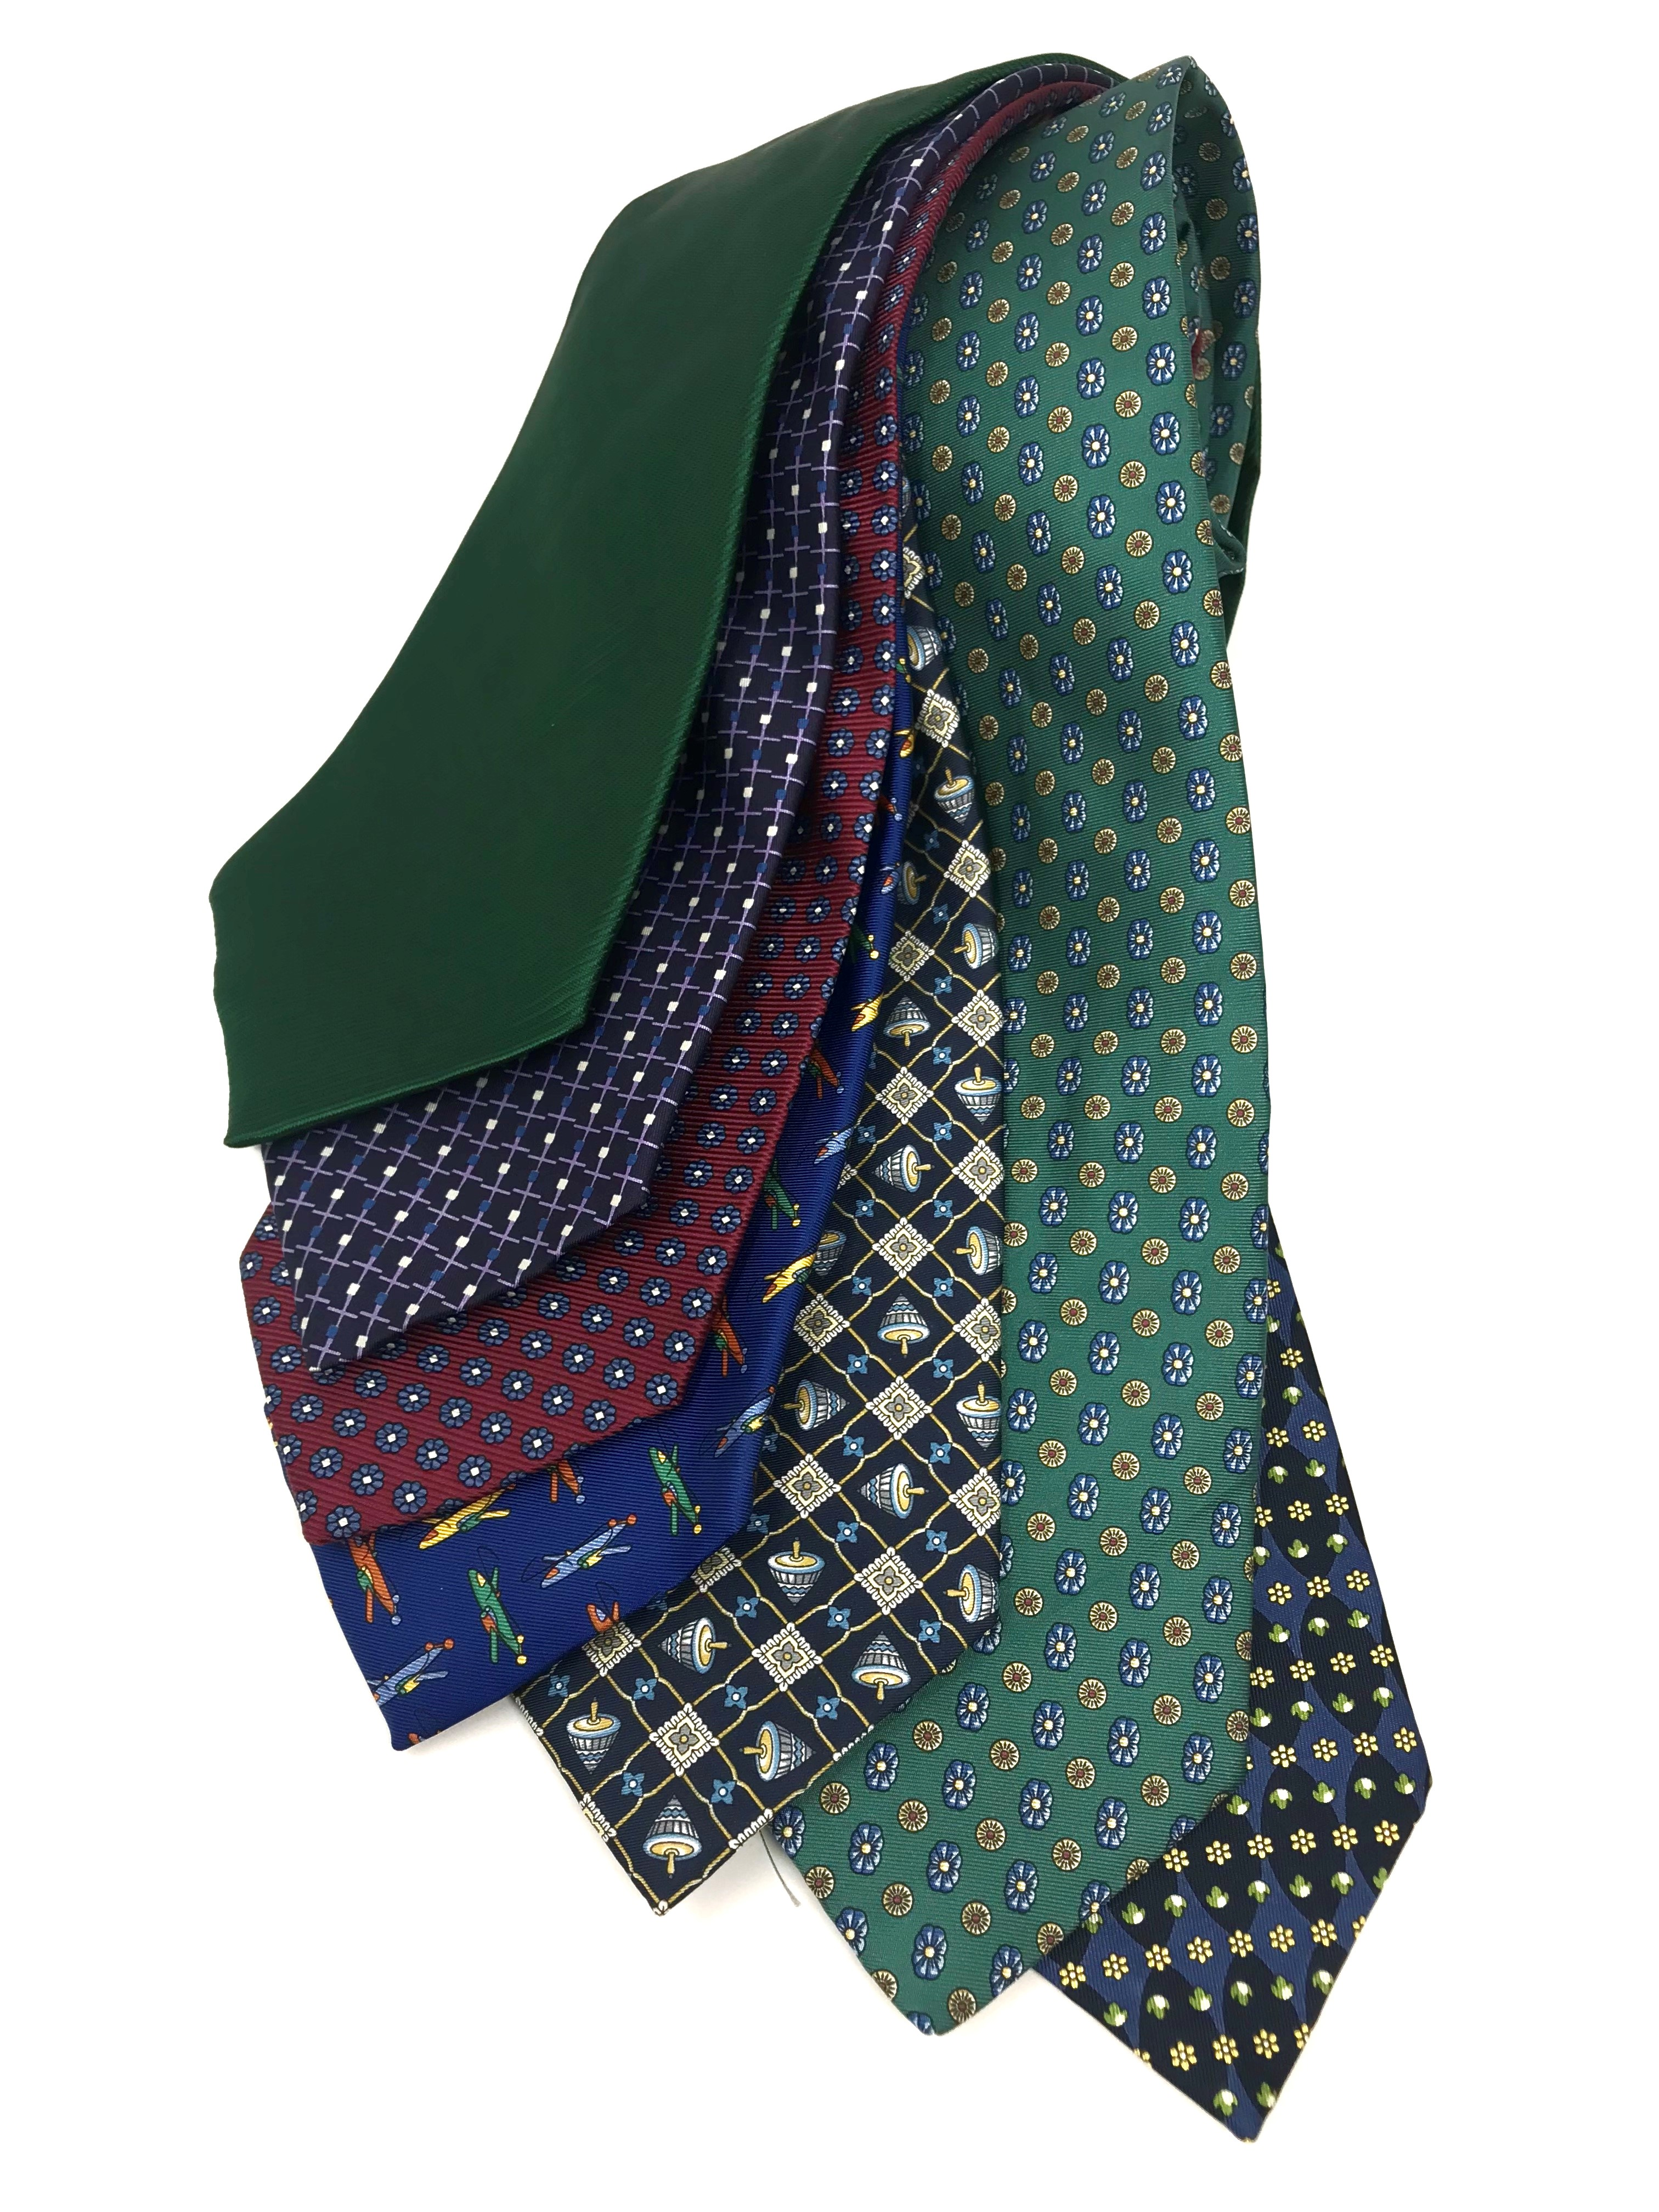 Cavenagh of London 7Piece 100% Pure Silk Ties Made in UK (709D)RRP£139.99